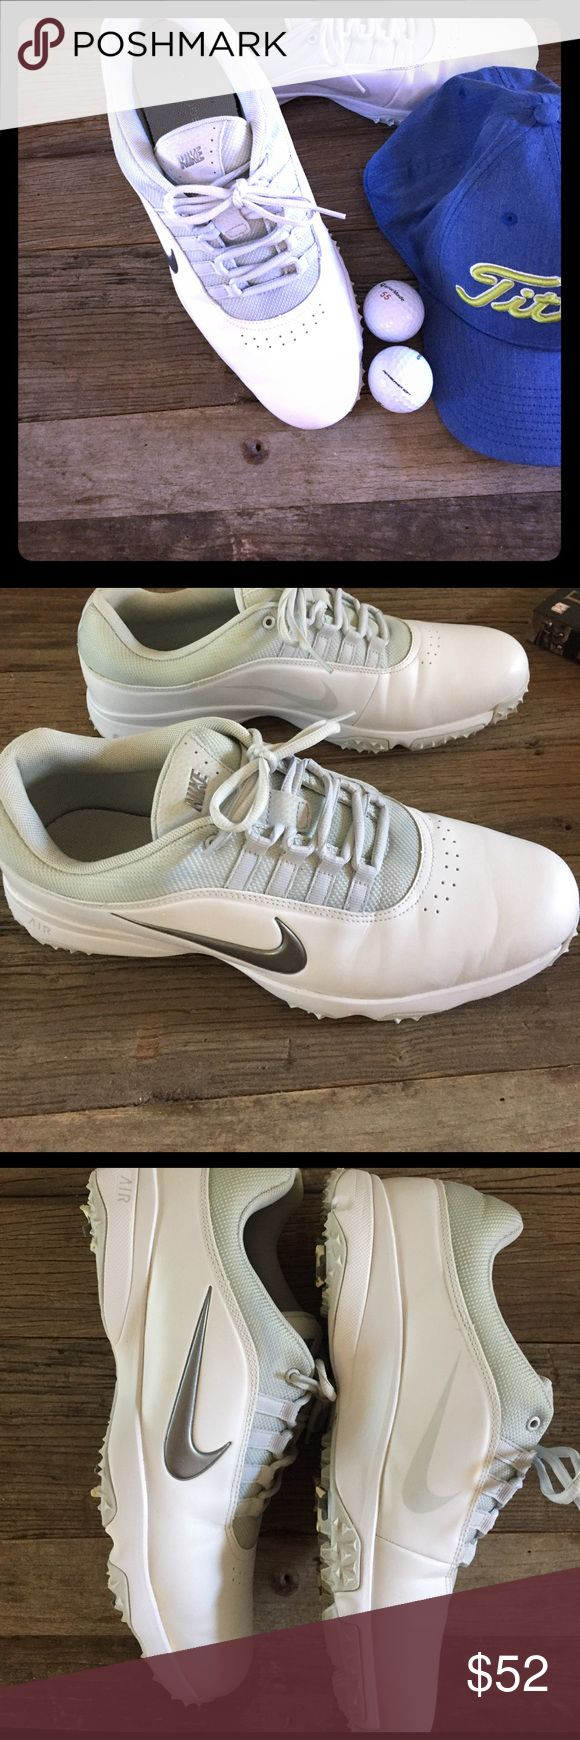 🙋🏻♂️MEN'S NIKE 2016 AIR RIVAL 4 golf shoes These are The LATEST NIKE GOLF SHOES. Hey have been worn once. White with light gray . Excellent condition minor flaws. Beautiful golf shoes!! Nike Shoes Athletic Shoes